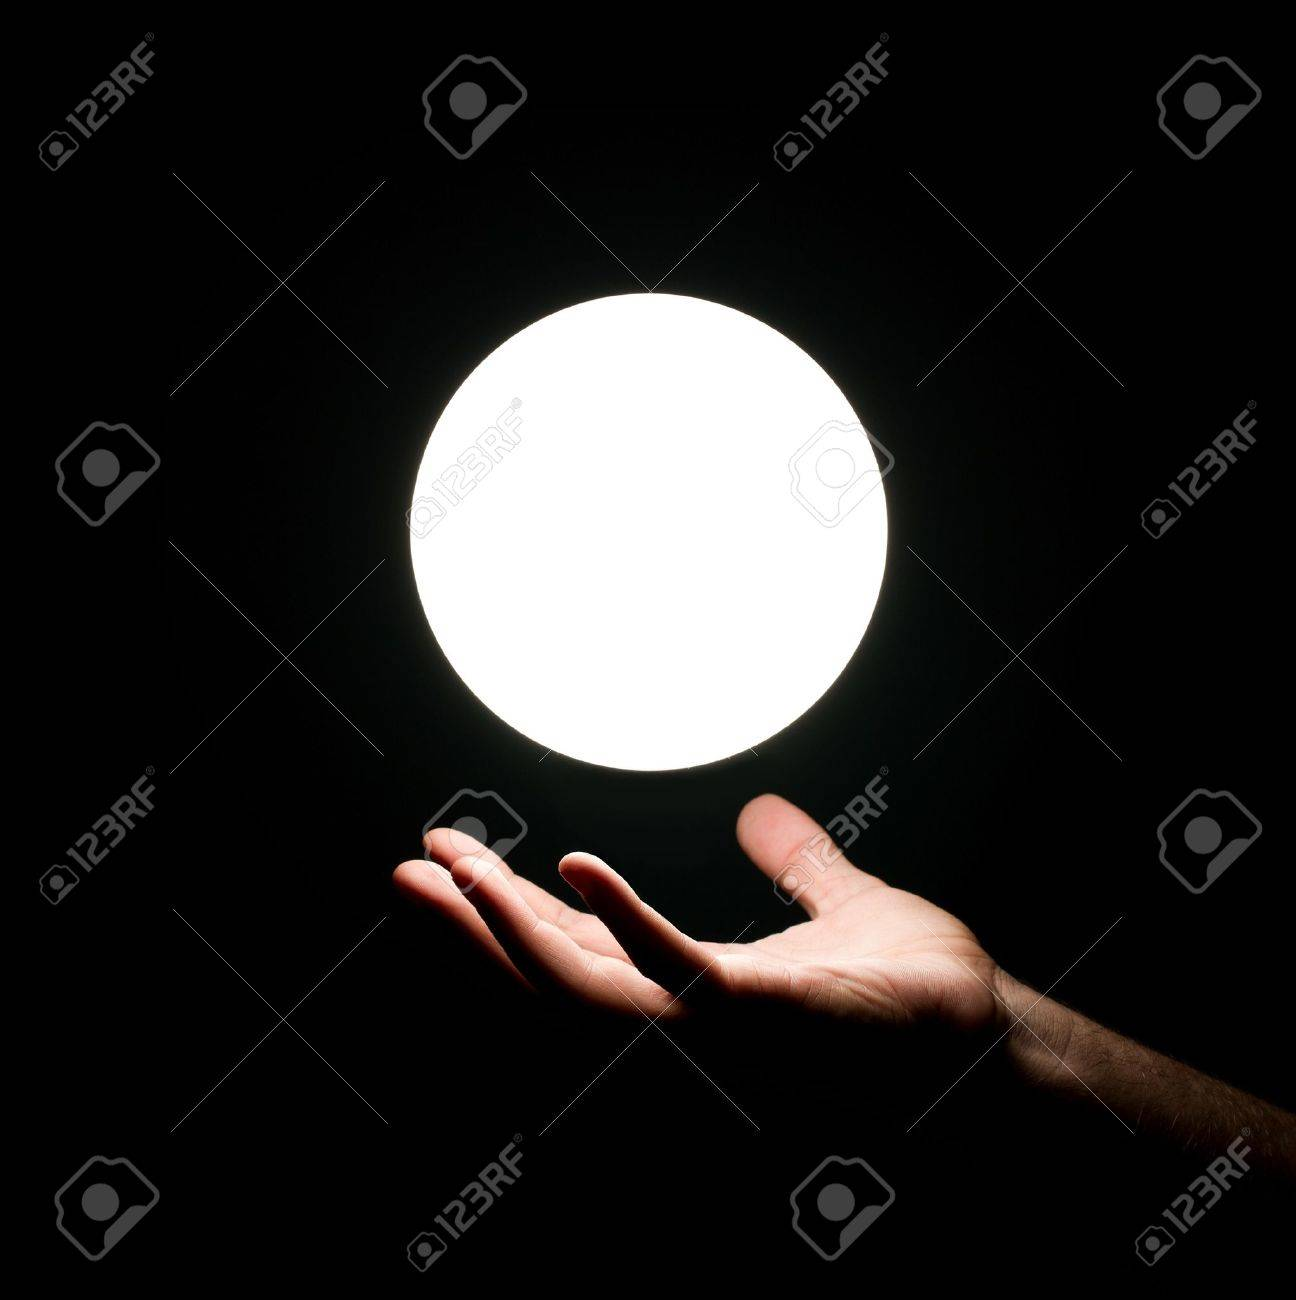 Bright light ball over human hand isolated on black background Stock Photo - 14743762